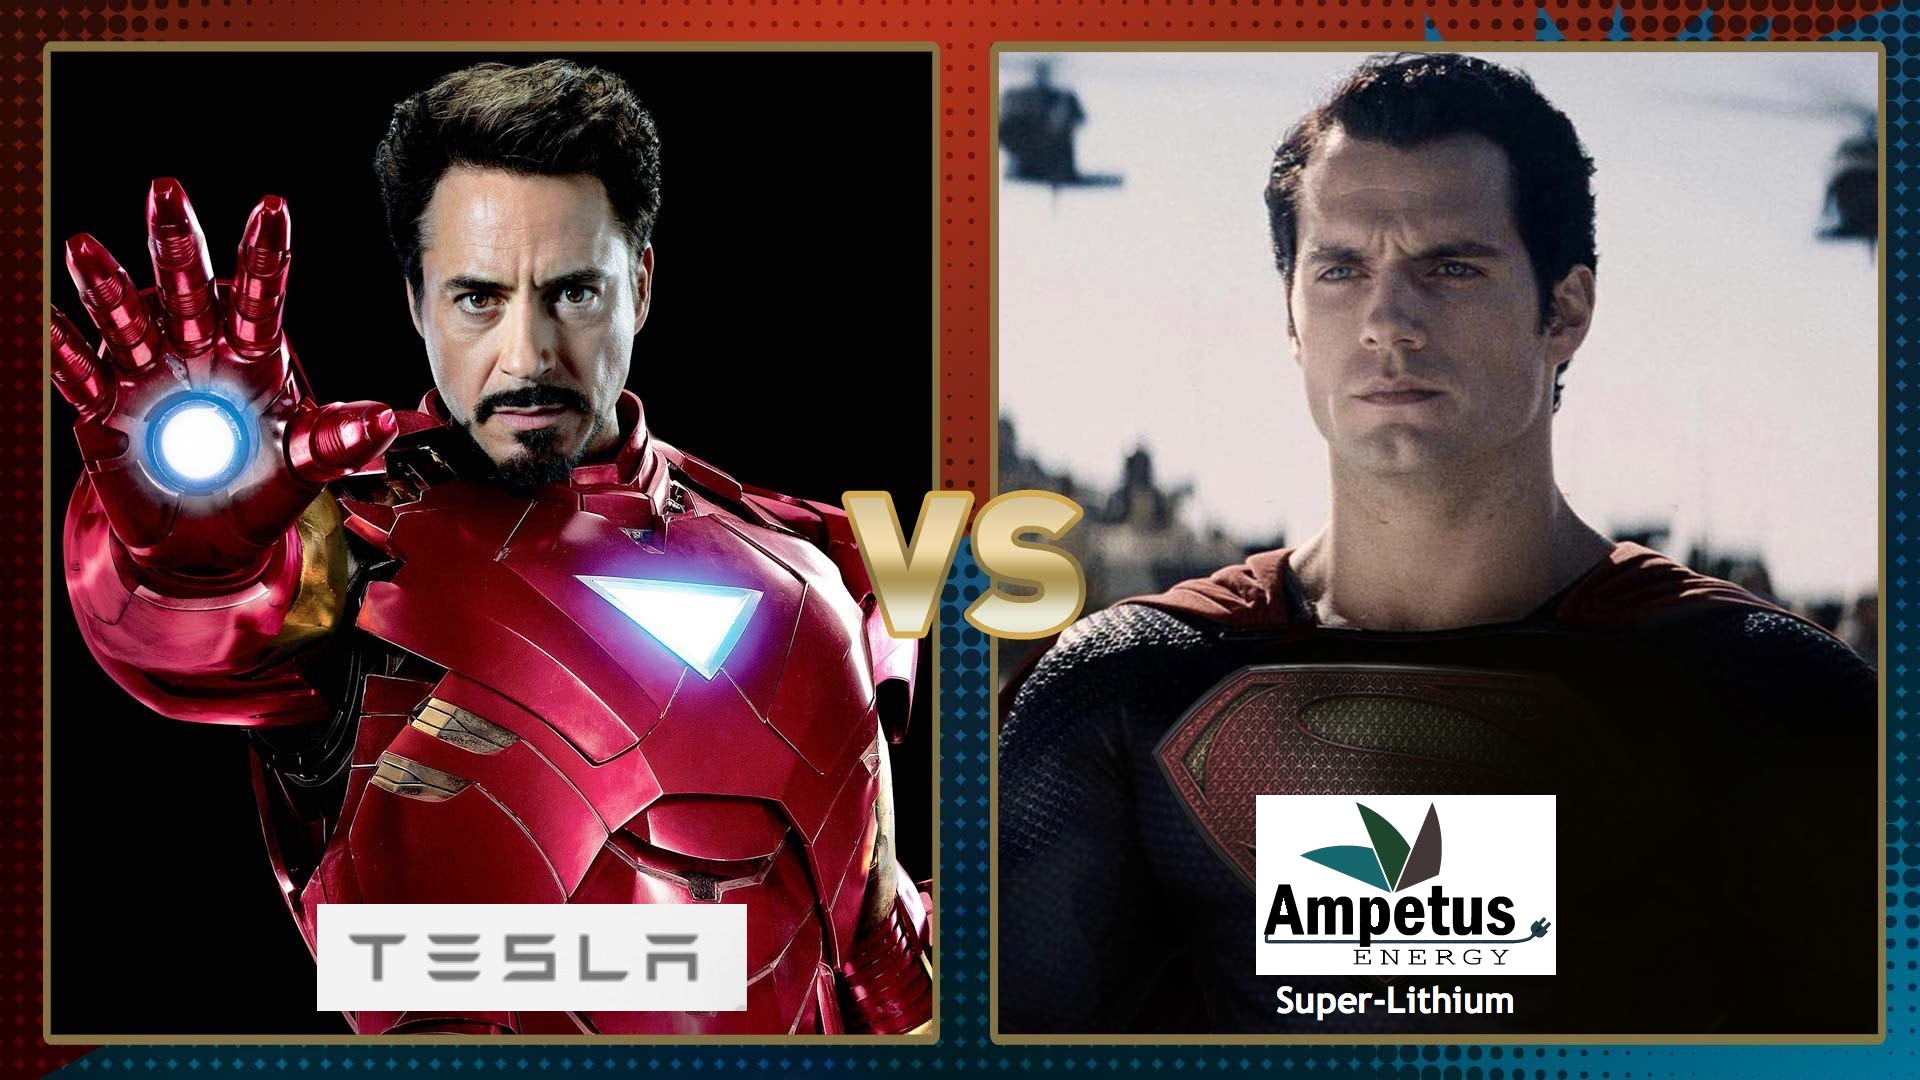 Ironman vs superman